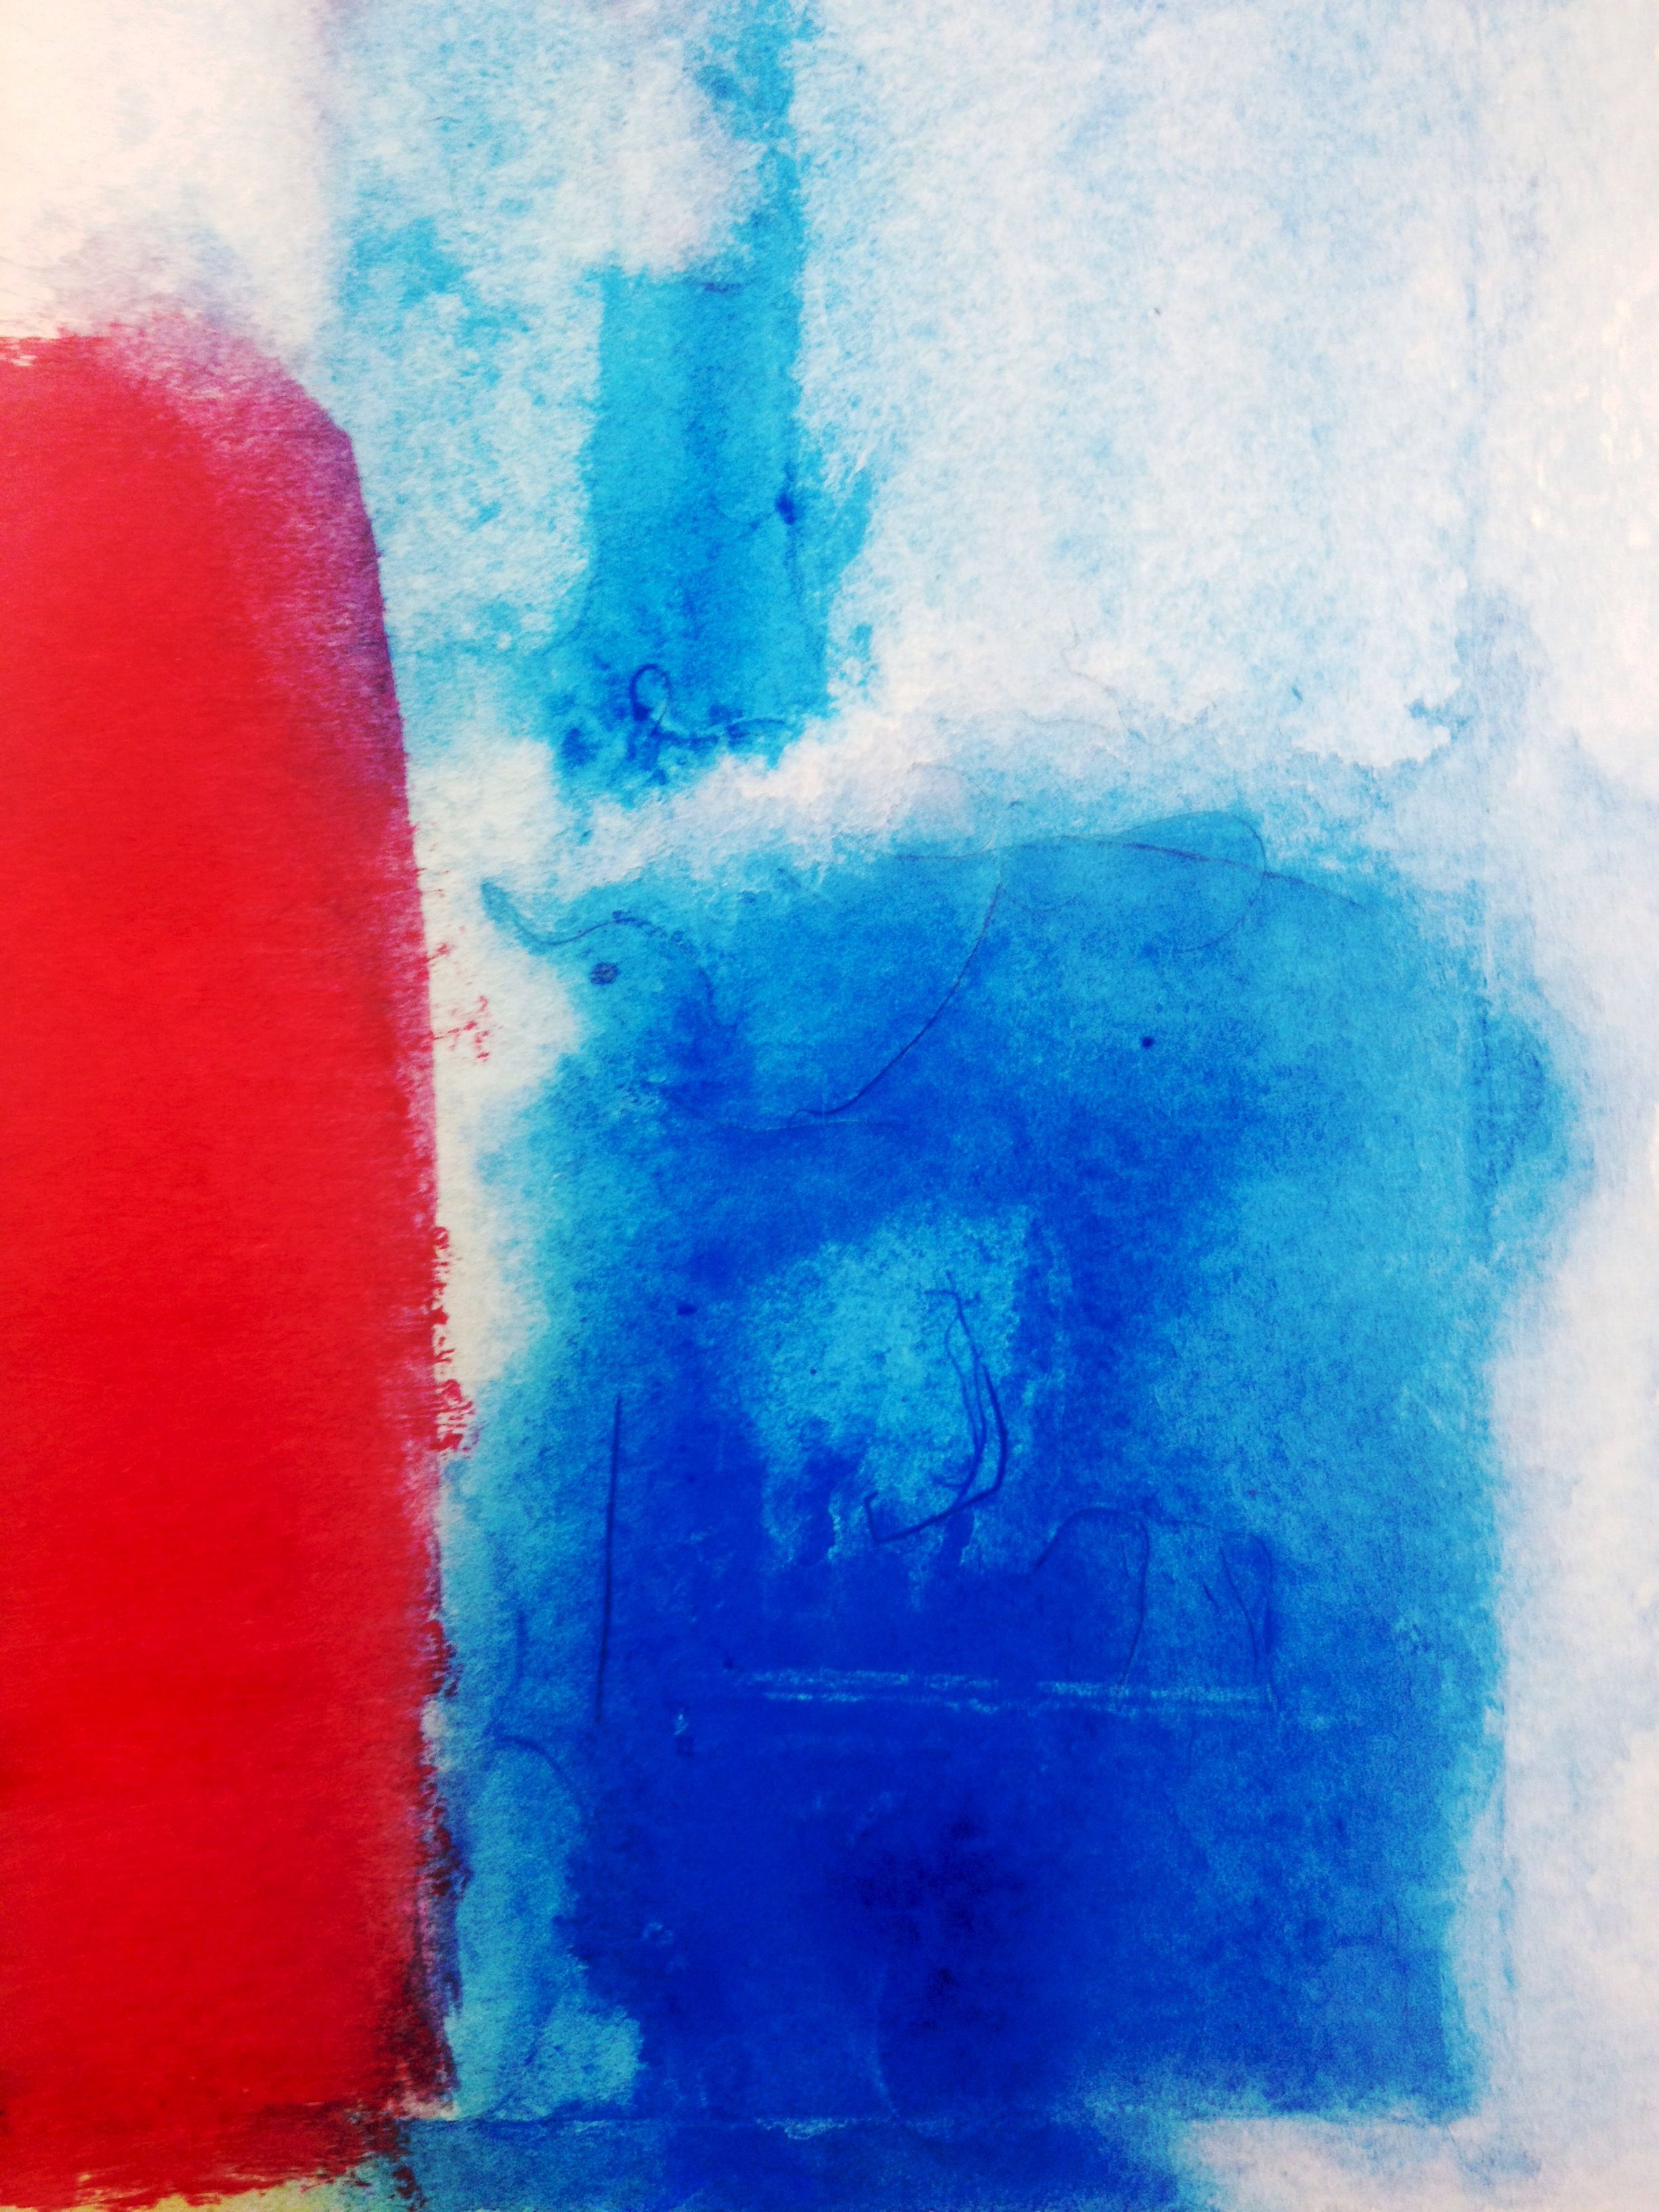 """""""Calm After the Storm""""     acrylic and water color on paper     3 1/2"""" x 5 1/2"""""""